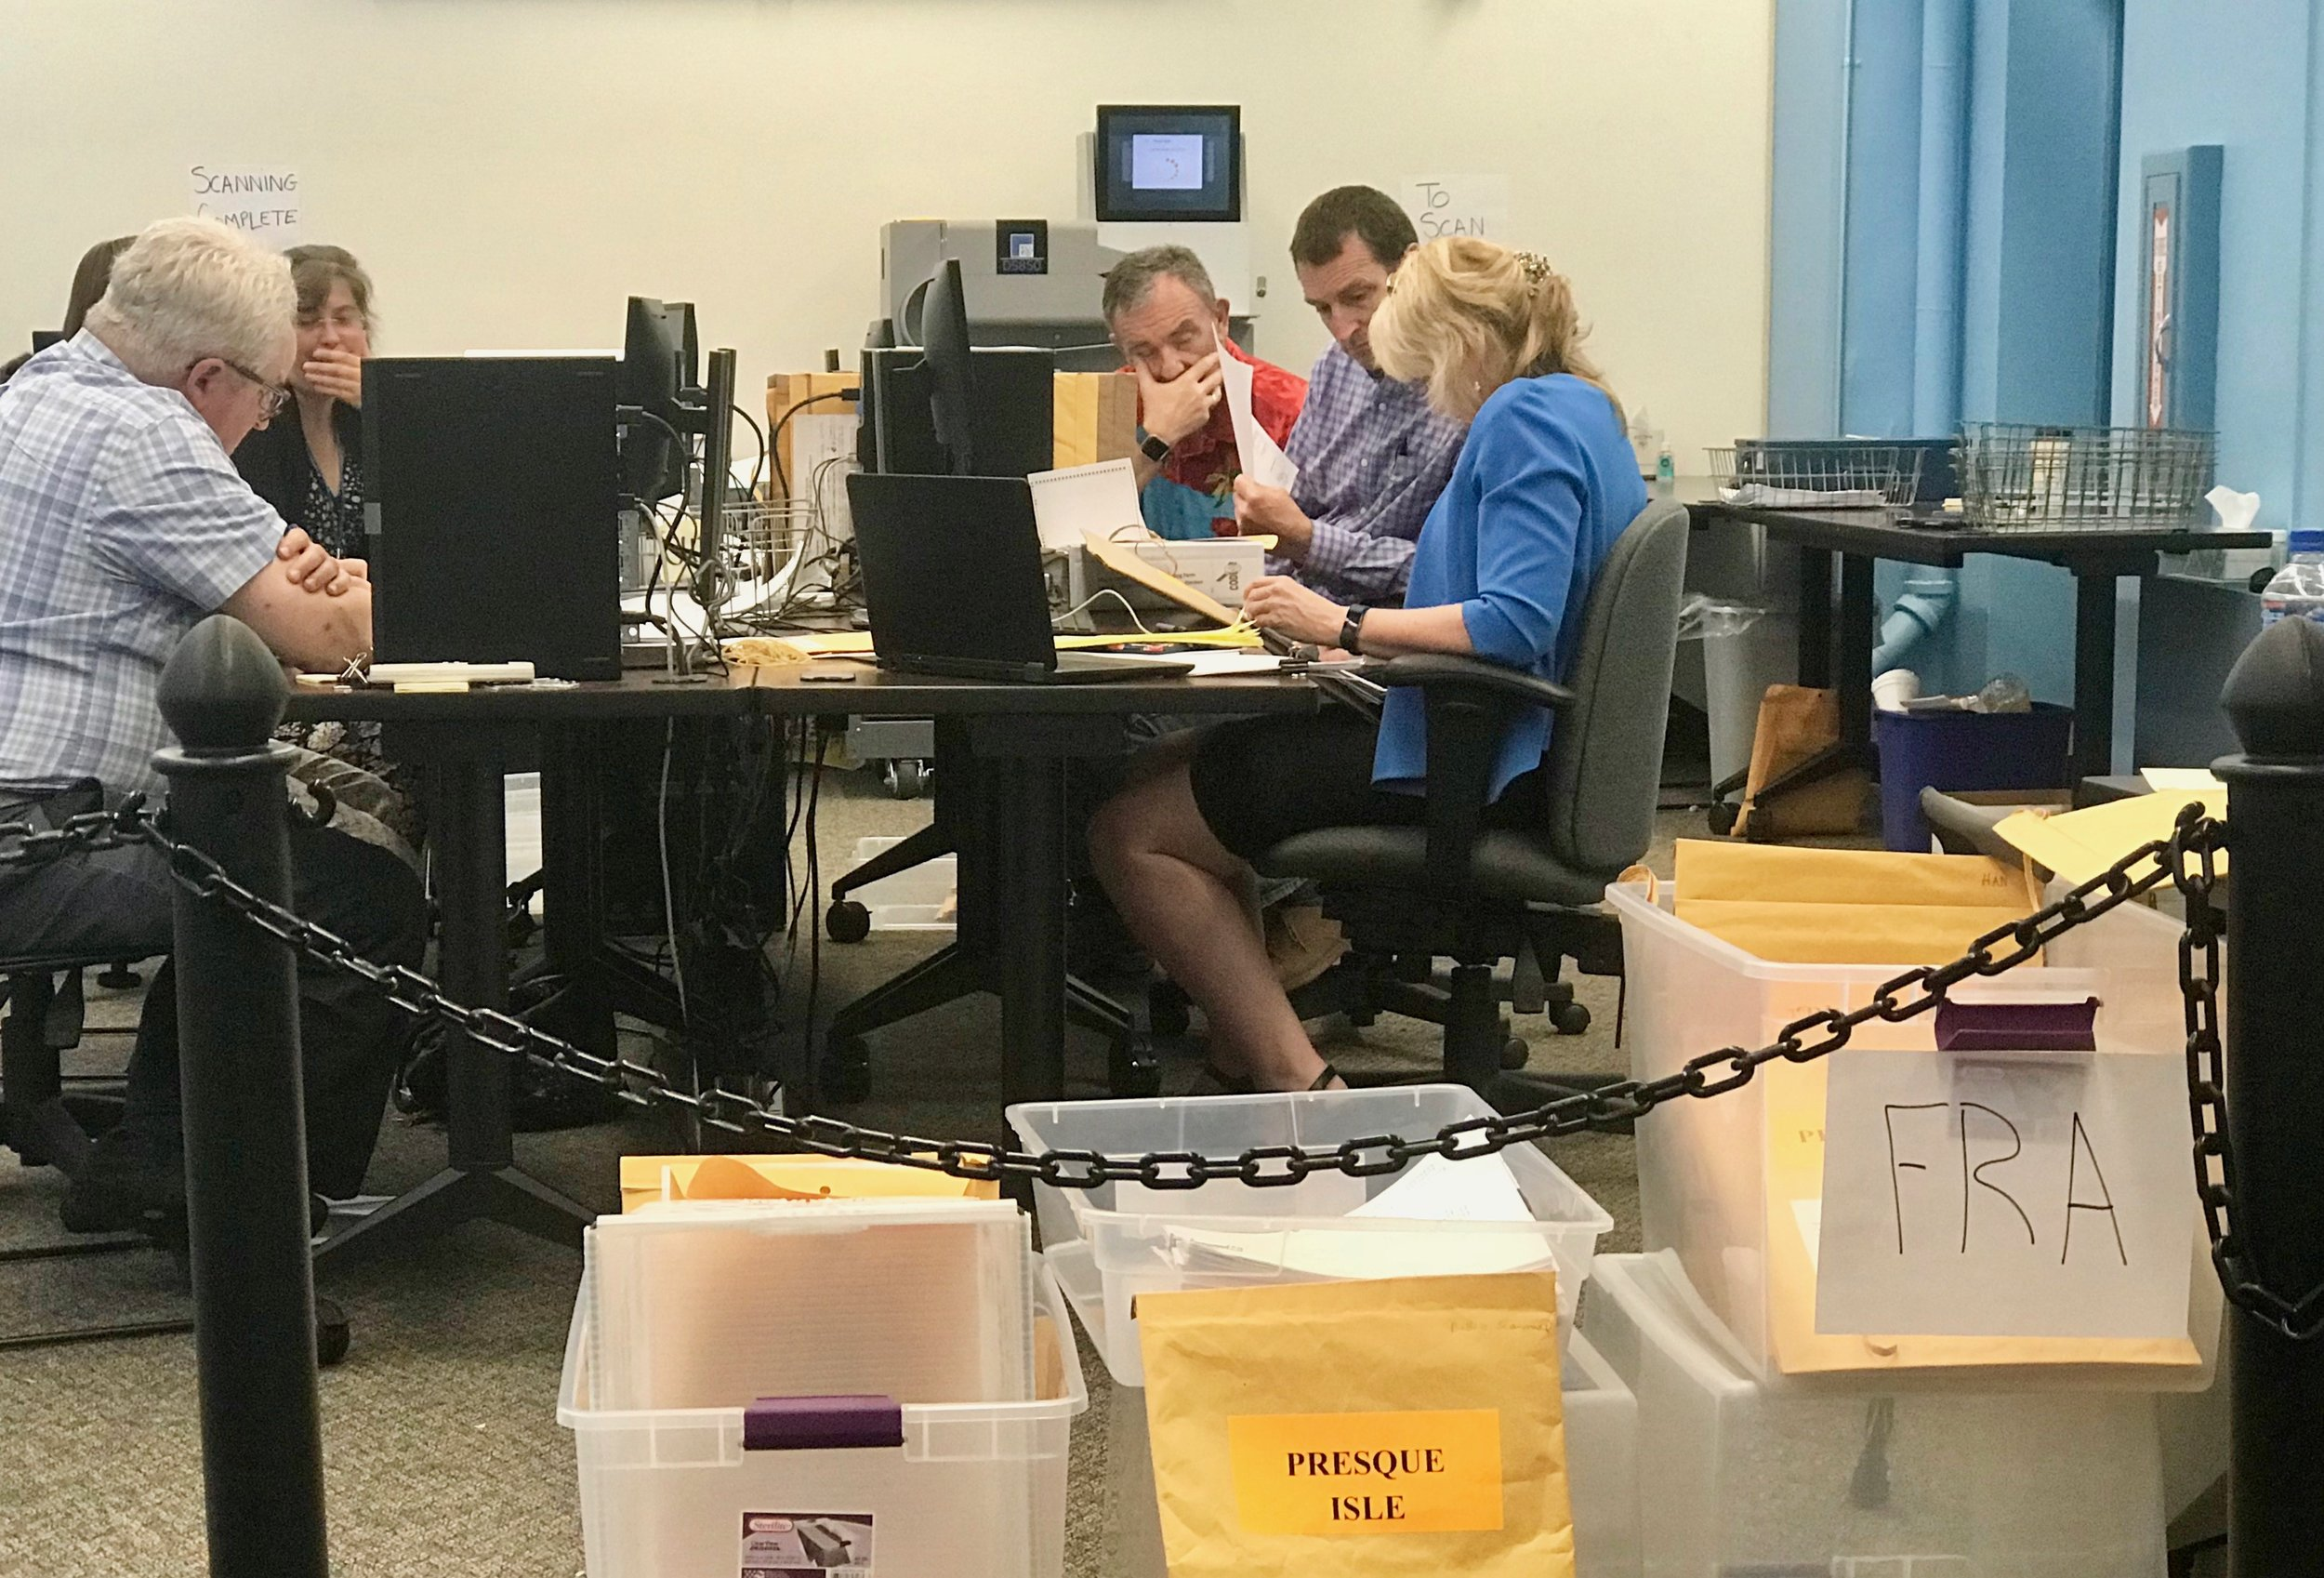 Maine election workers certify ballots before running the ranked-choice voting program to determine the final results of the June 12 primary.